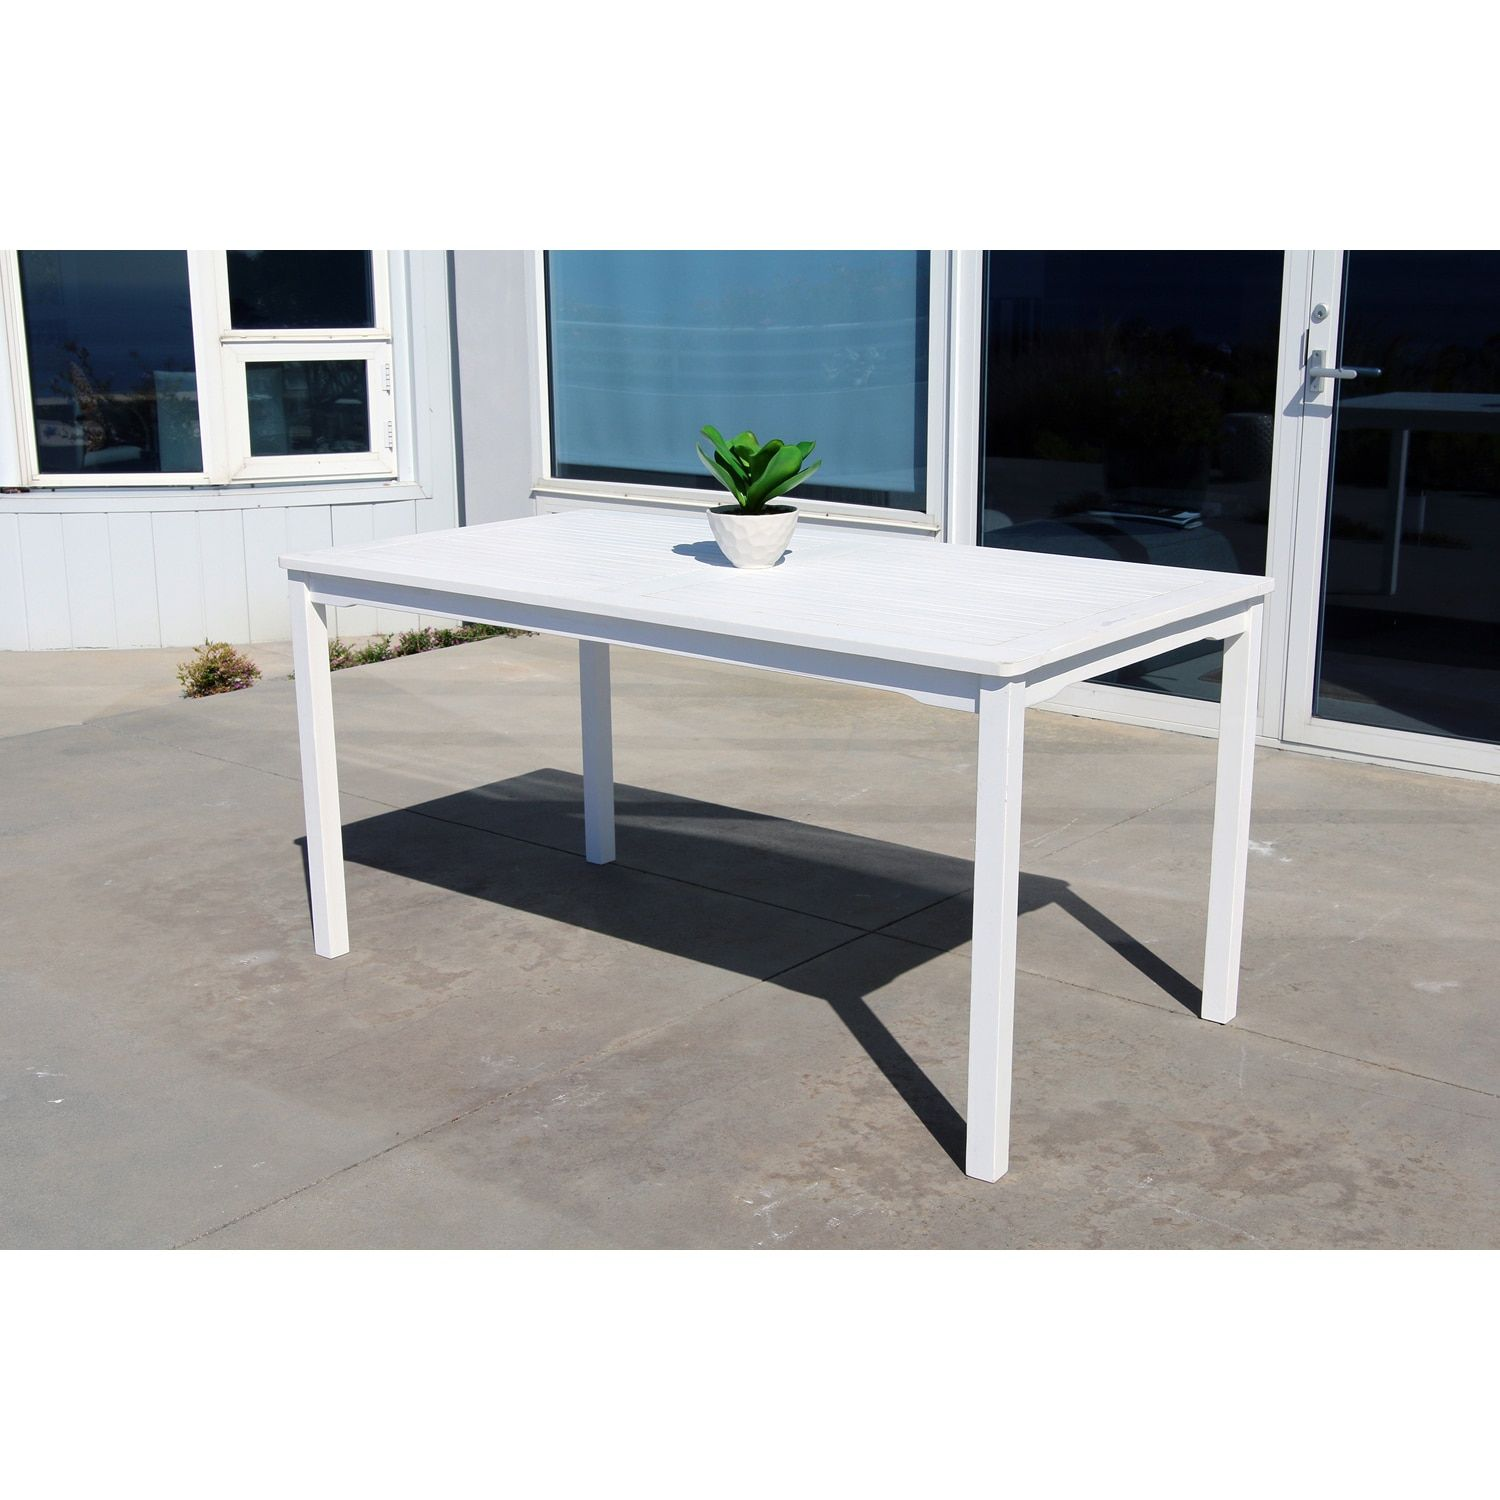 Siesta White Rectangular Wood Patio Dining Table